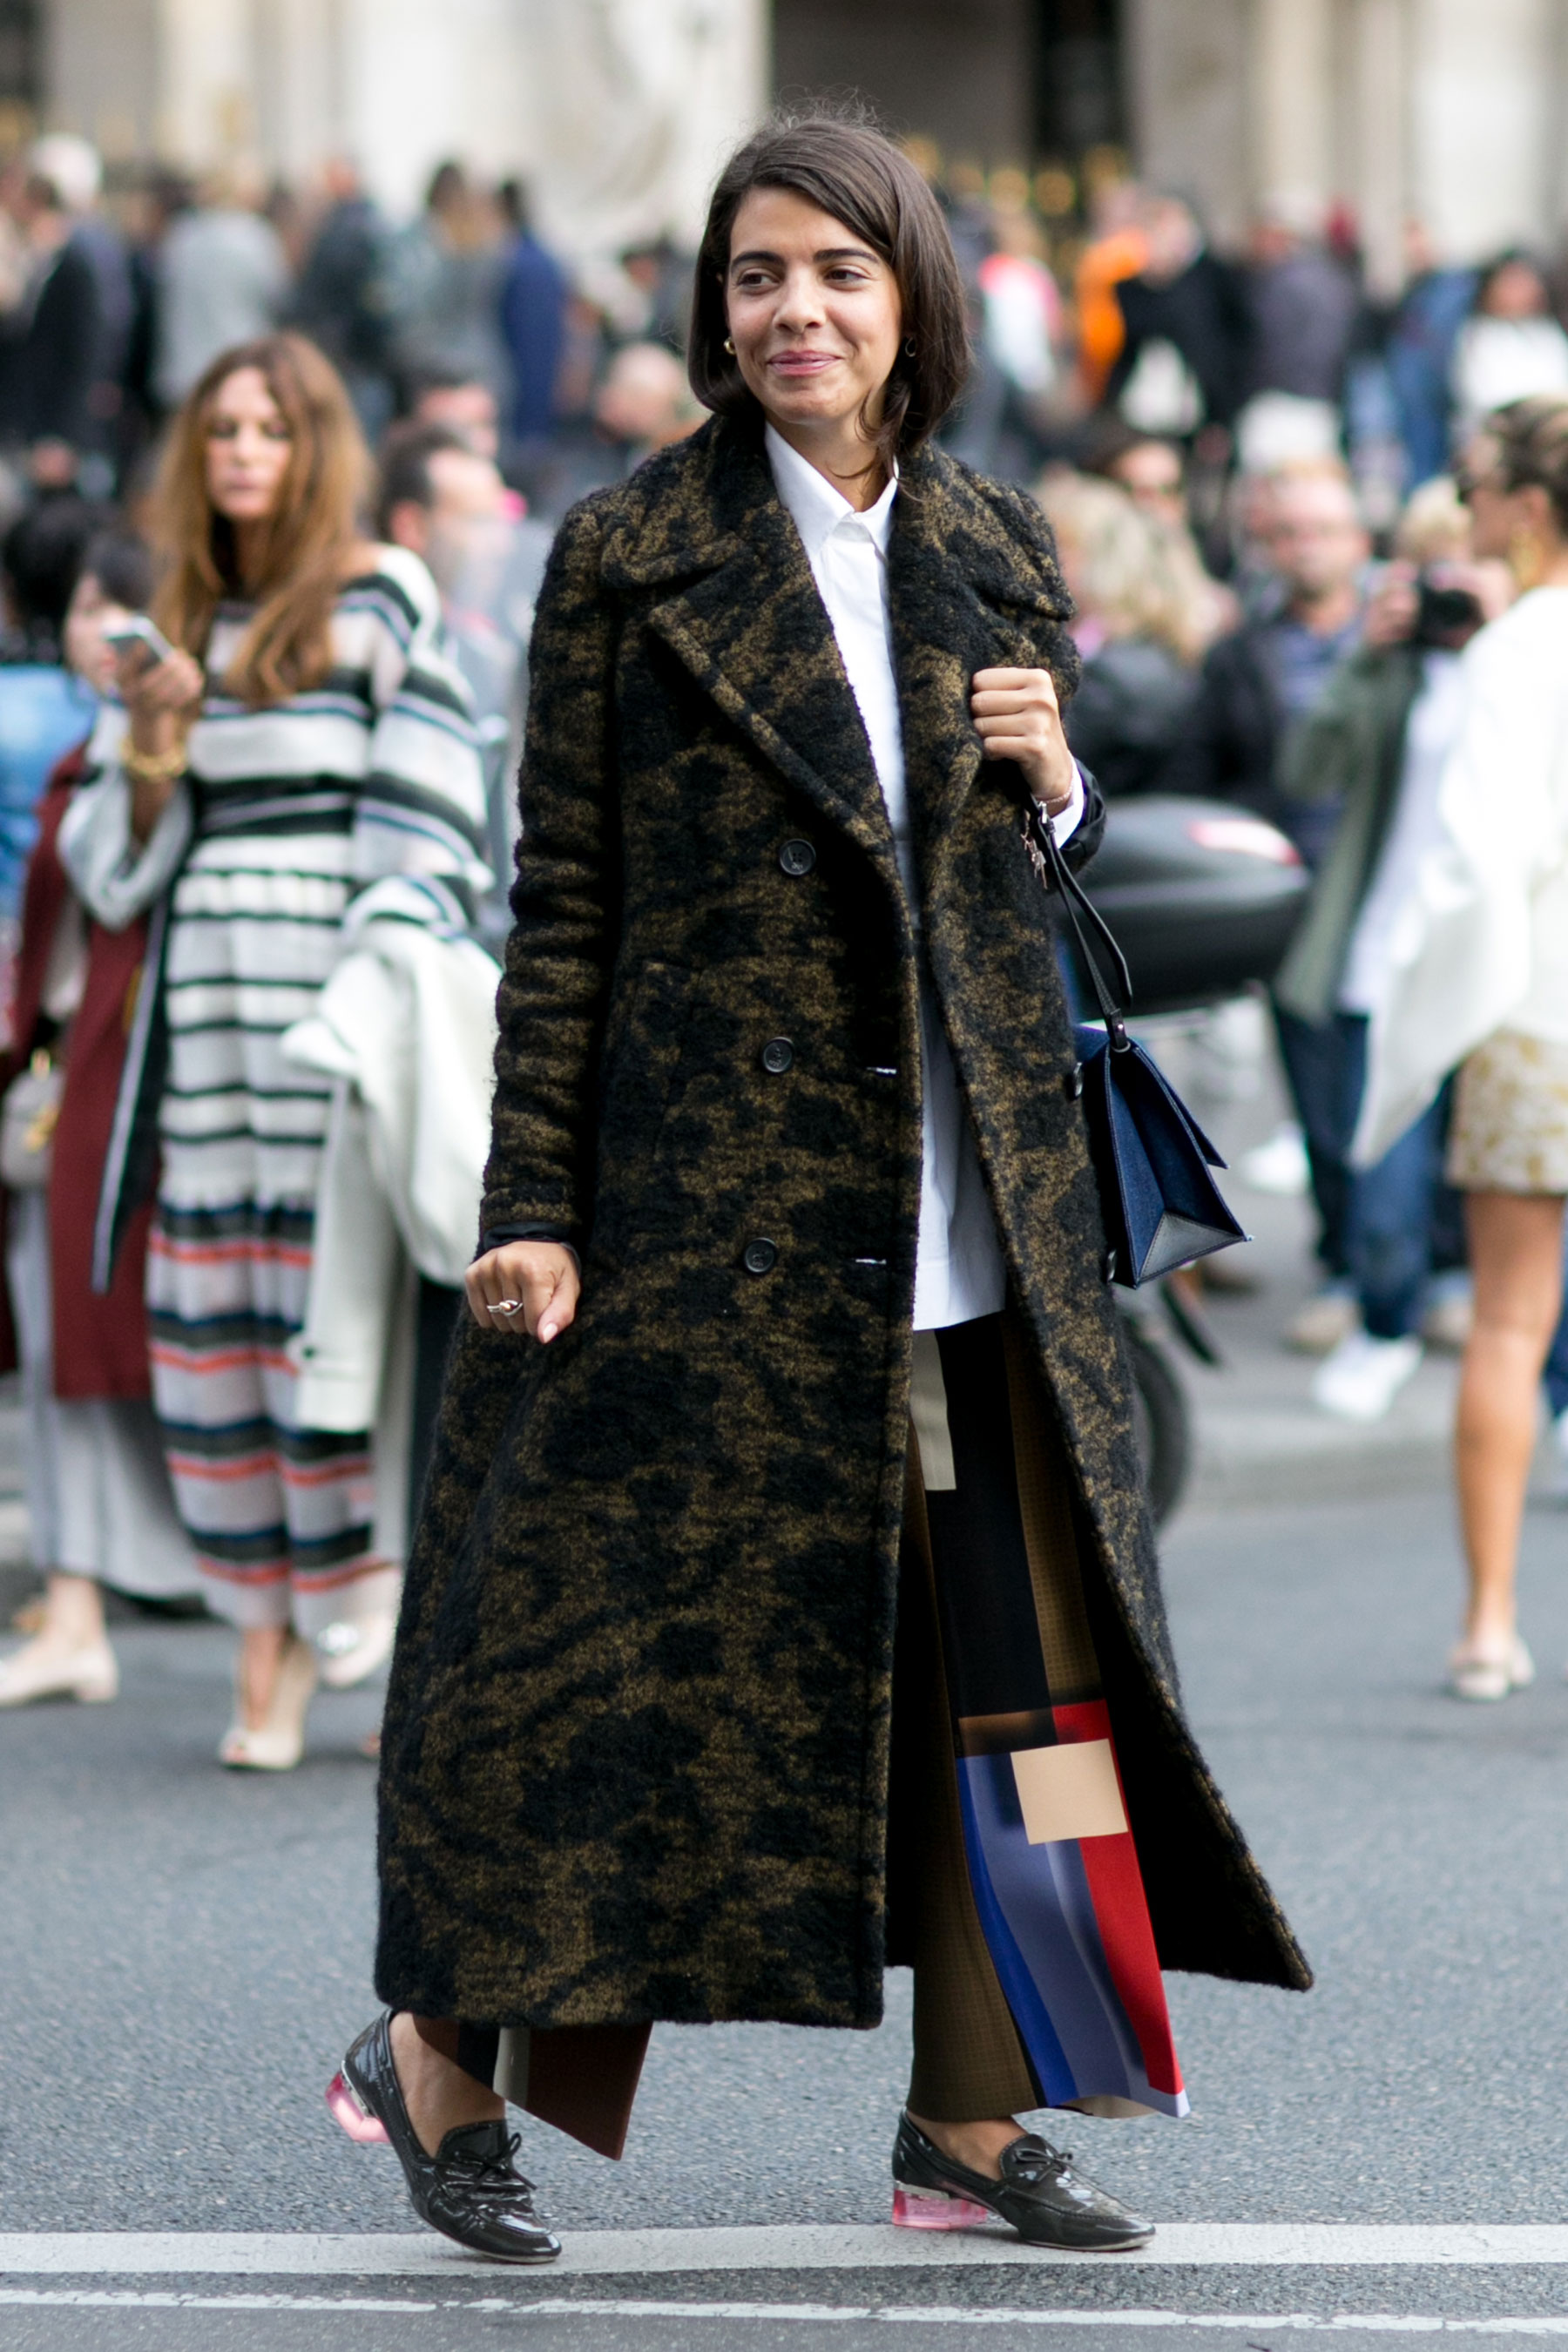 Paris-fashion-week-street-style-day-7-october-15-the-impression-51